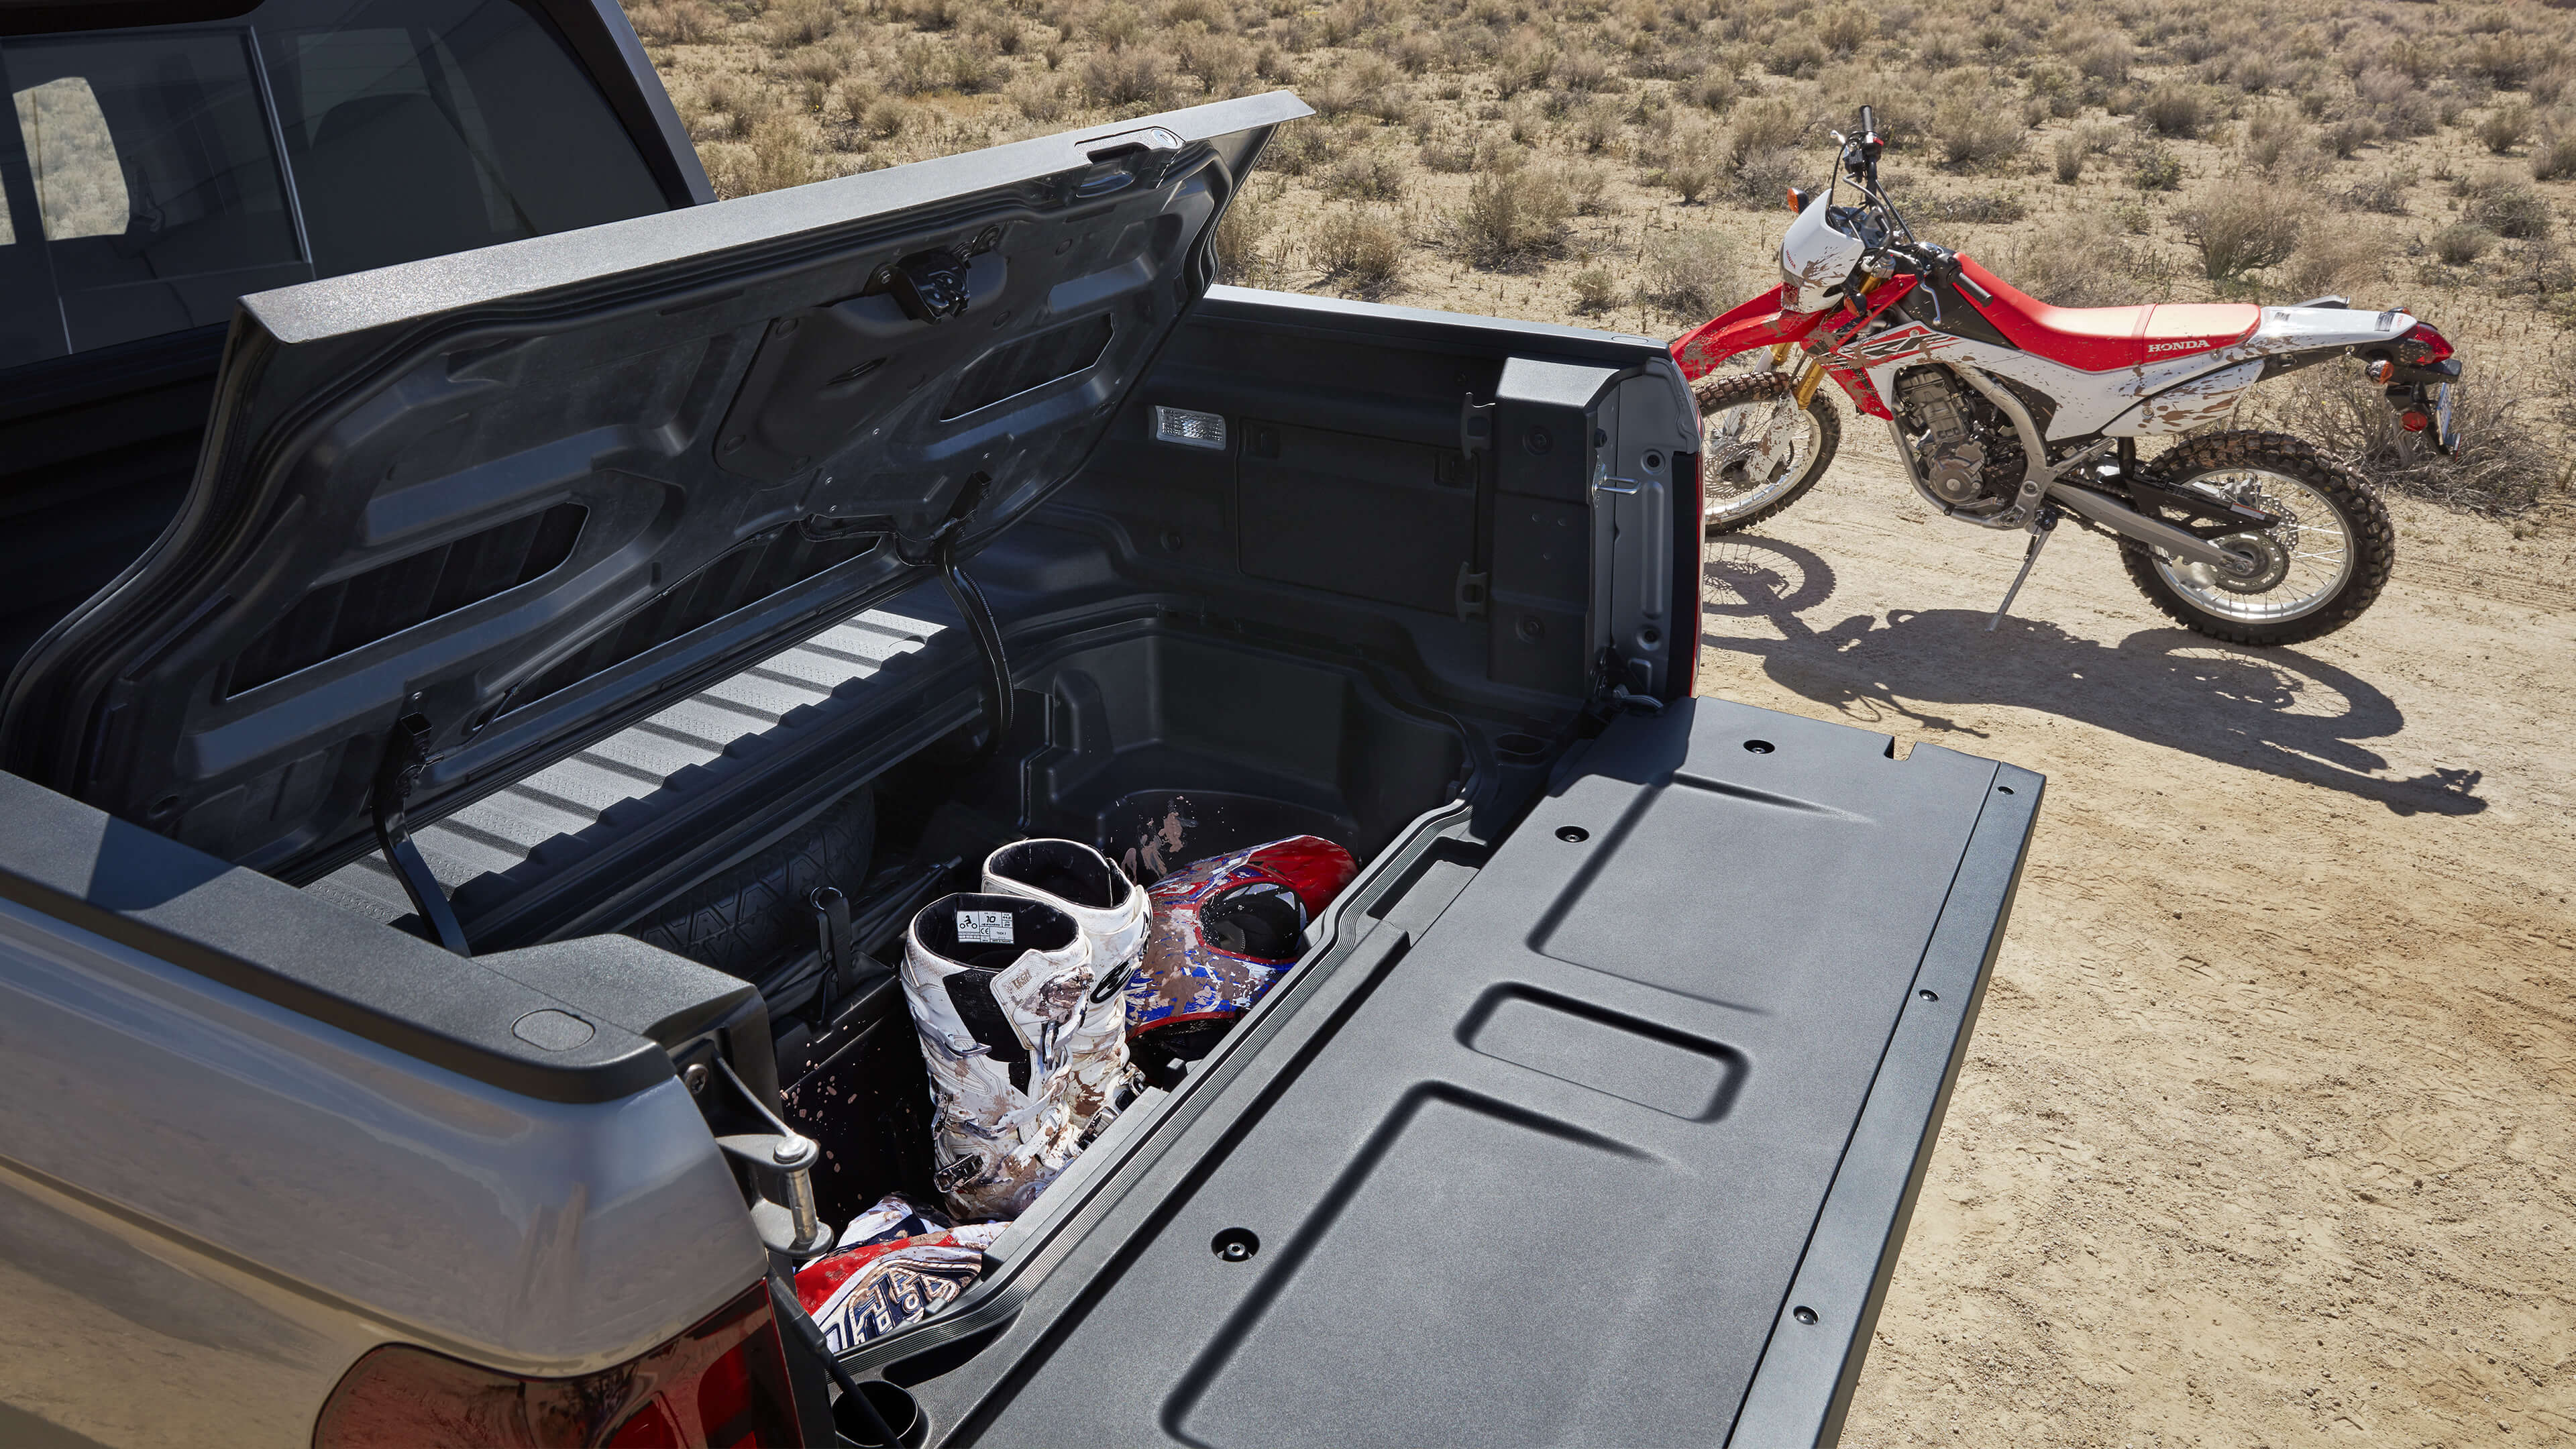 2020 Honda Ridgeline in-bed trunk open with dirtbike next to truck